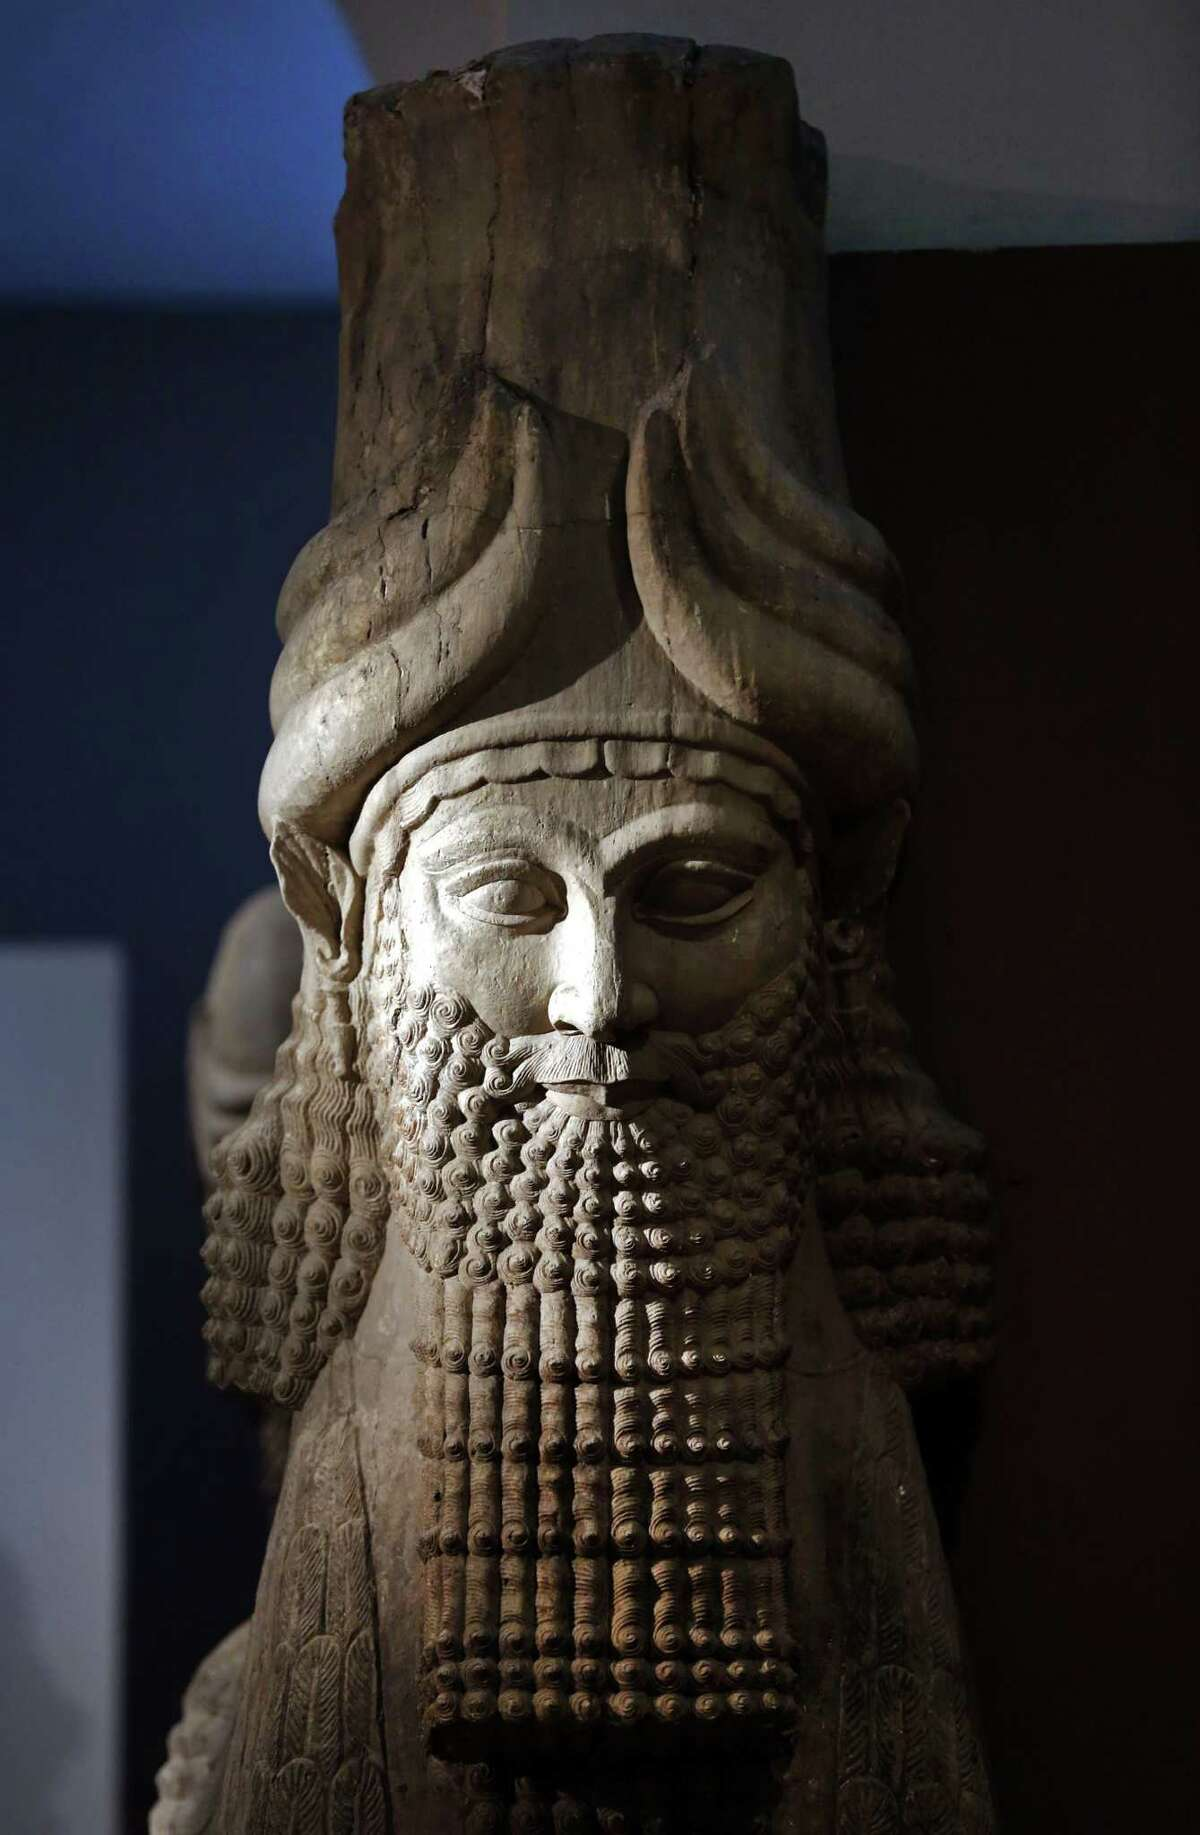 FILE - This Monday, Sept. 15, 2014 file photo shows a detail of a statue from the Assyrian period displayed at the Iraqi National Museum in Baghdad. Islamic State militants